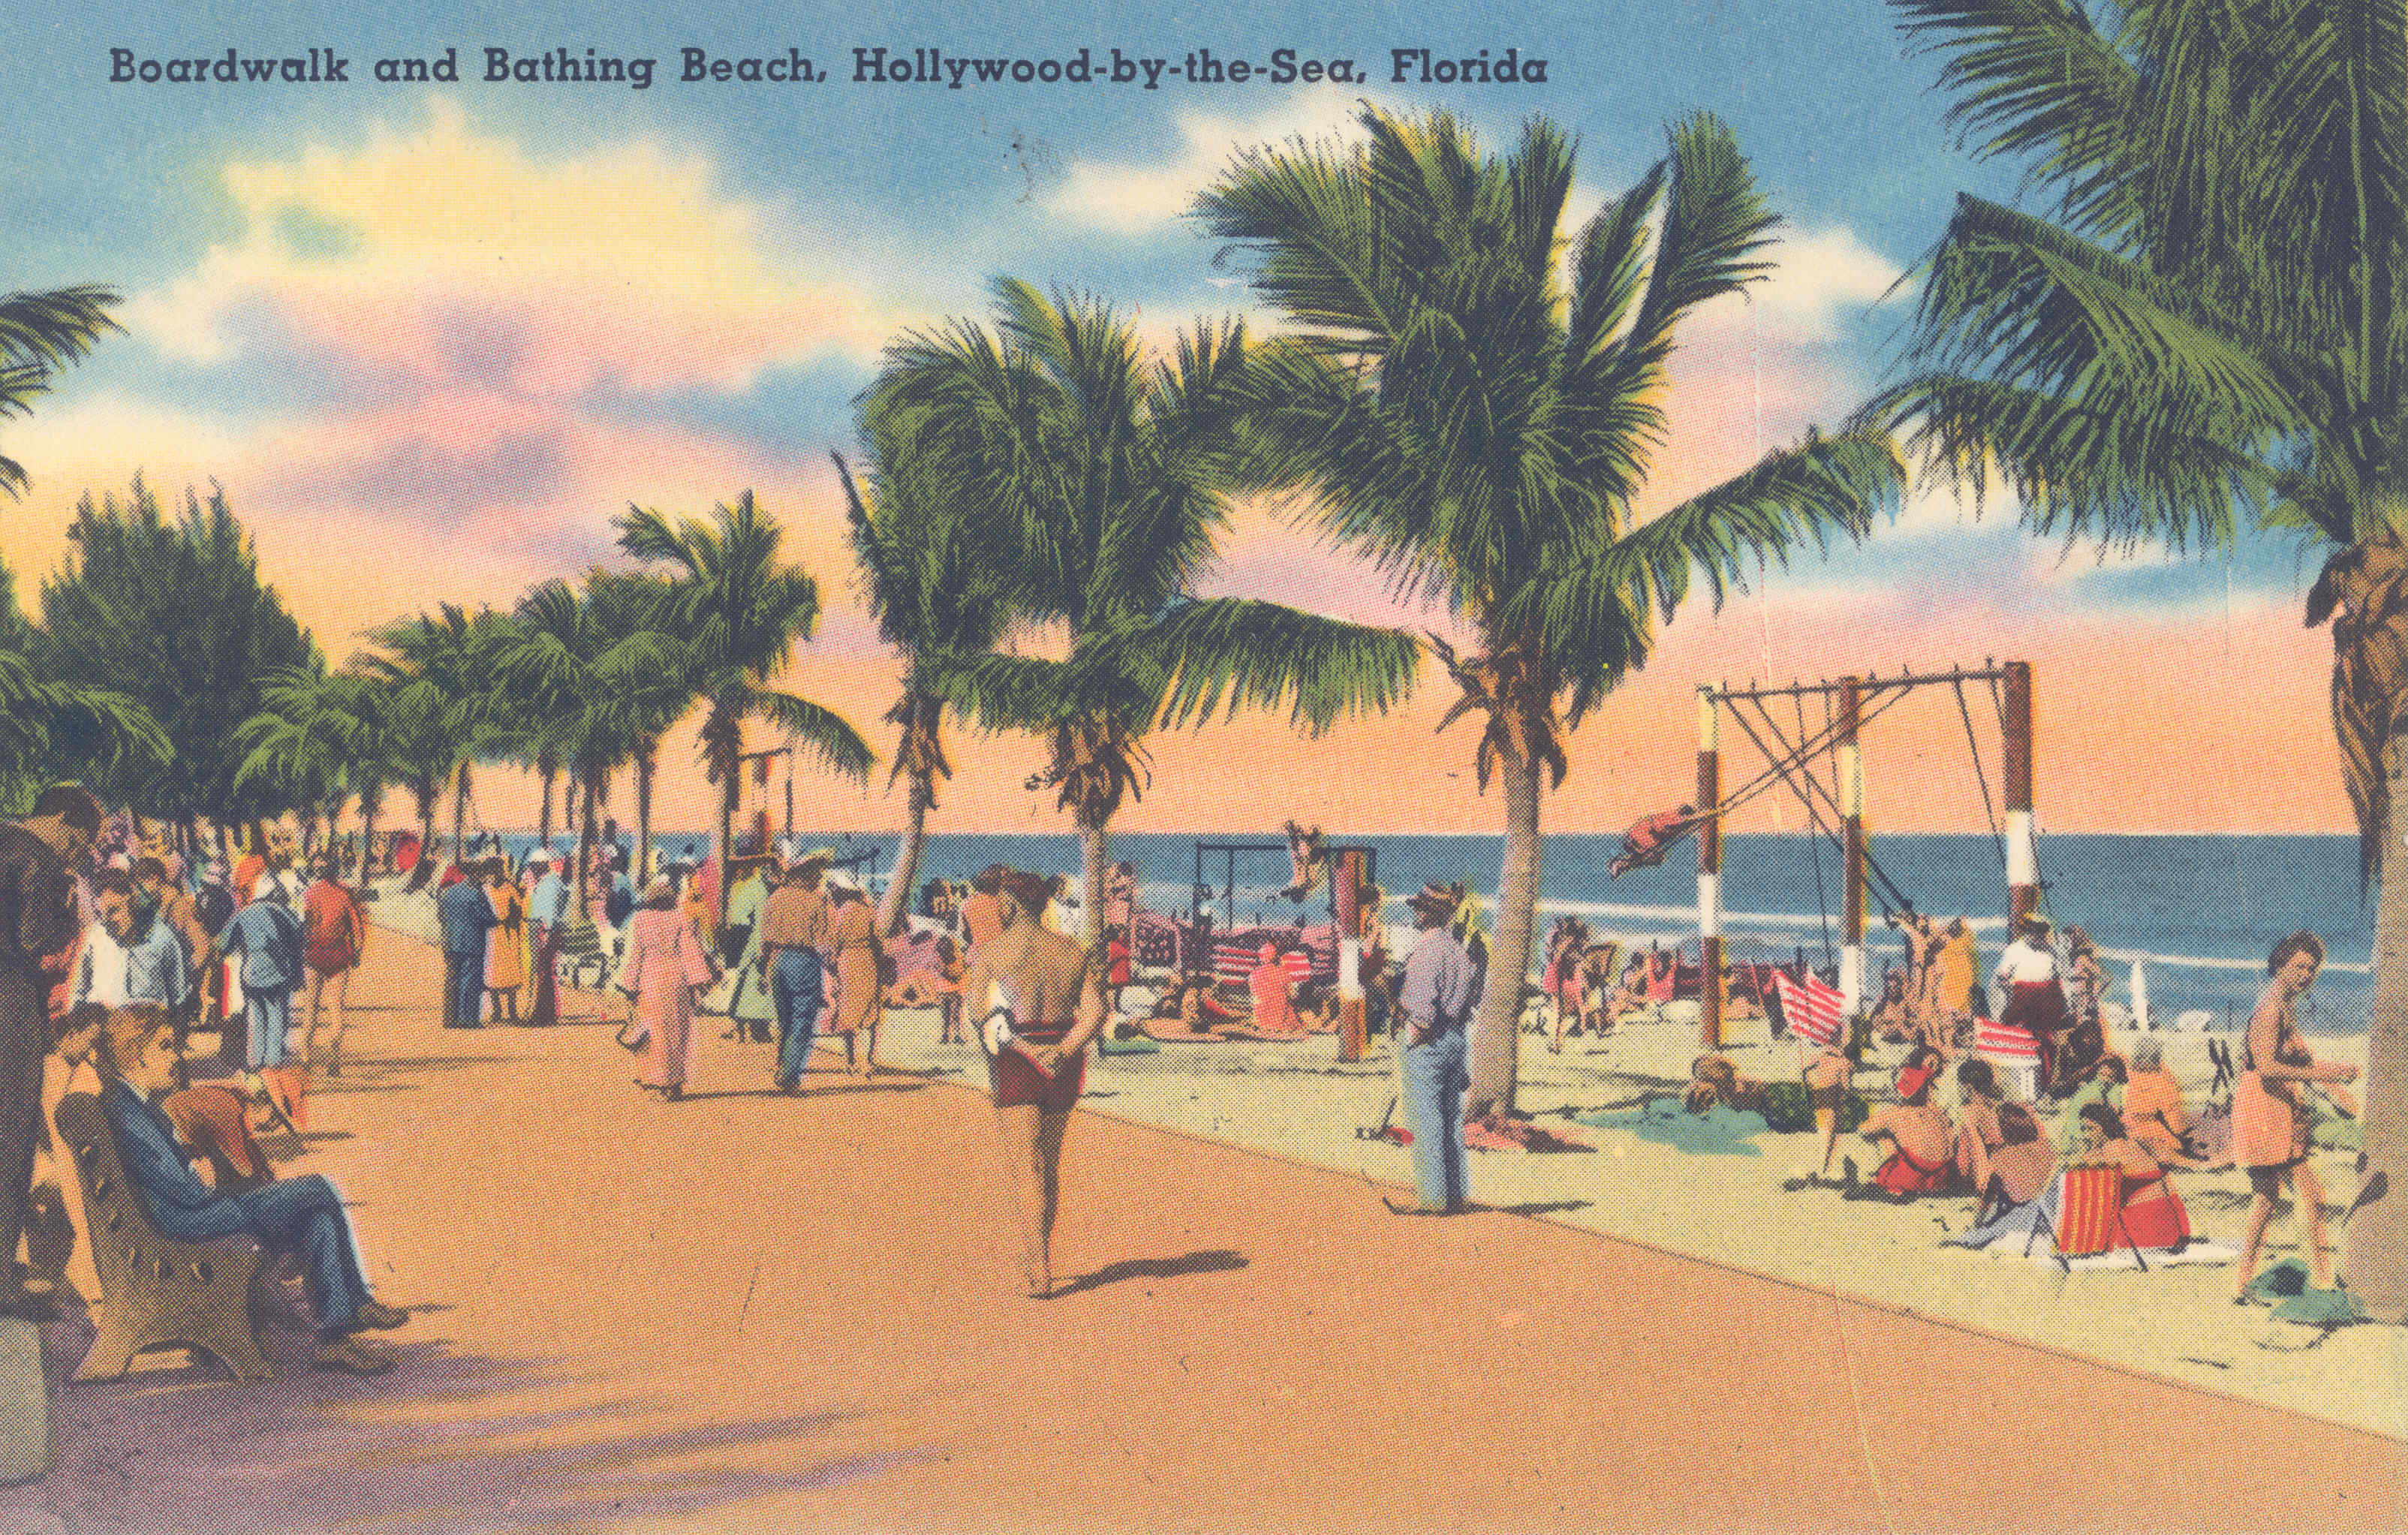 Boardwalk and Bathing Beach